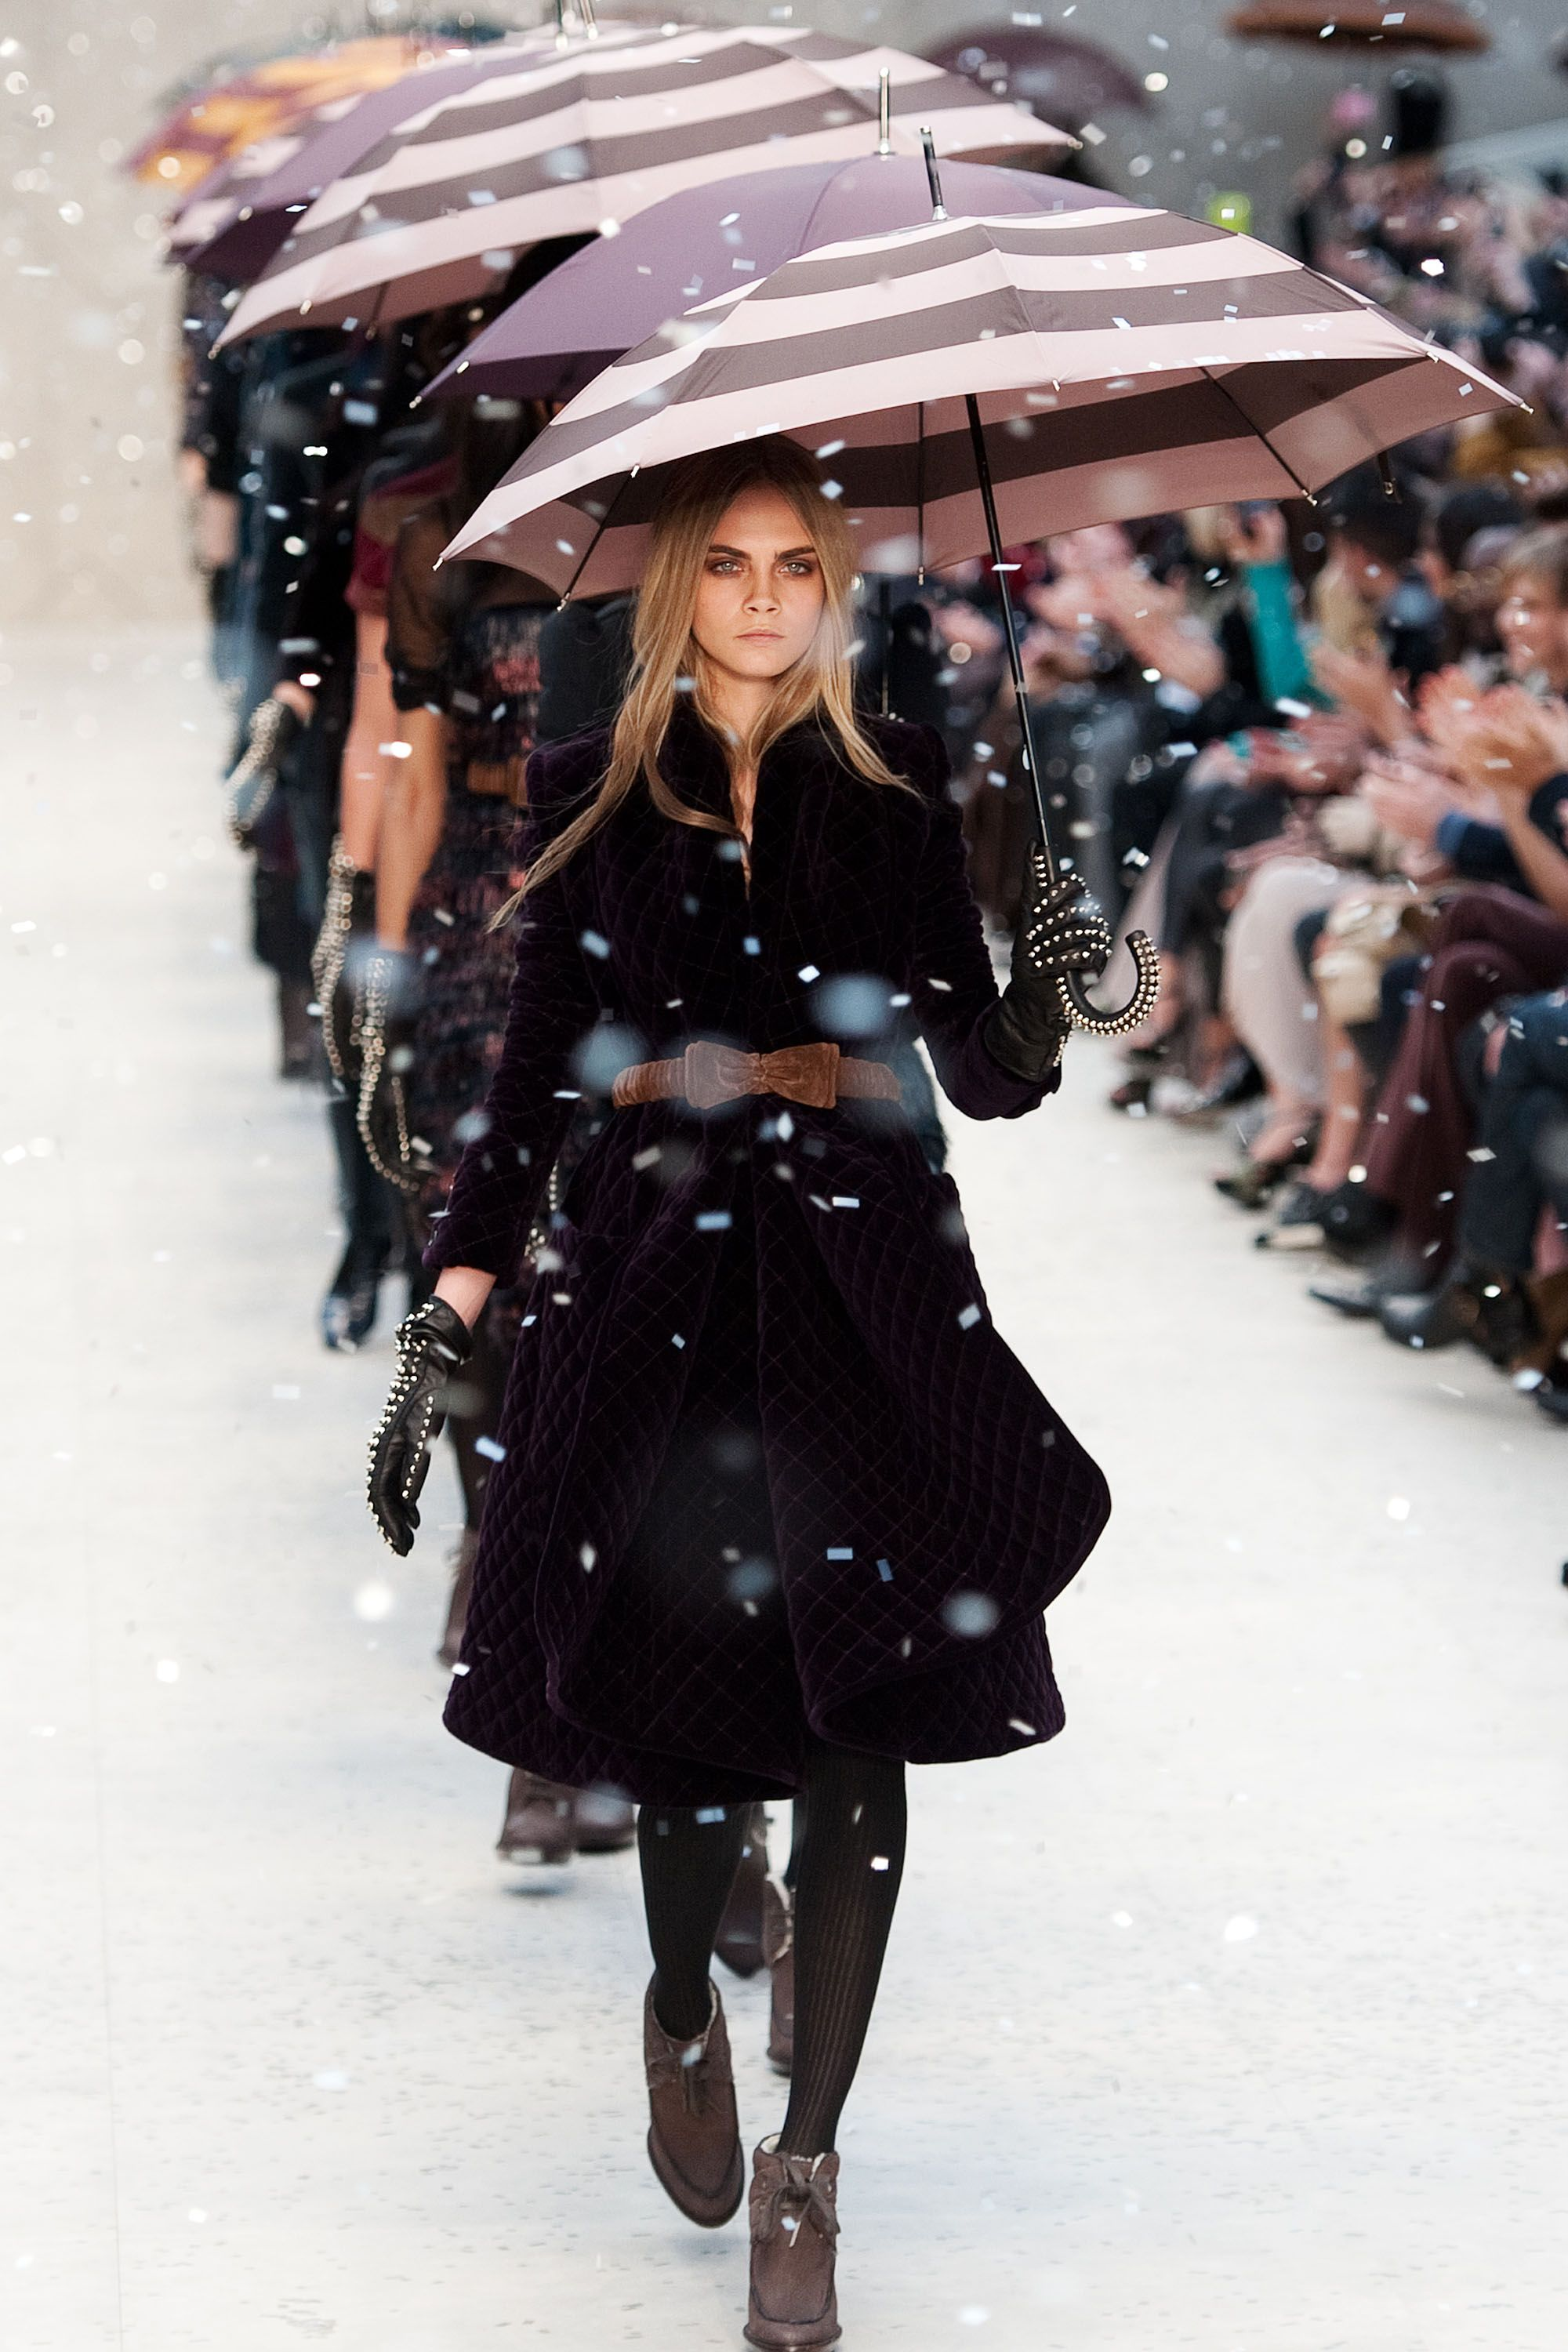 <p>File Burberry's Fall 2012 show under: the most epic snow storm we've seen to date. Led by super star Cara Delevingne and complete with studded gloves and umbrellas, this moment was one for the fashion history books. </p>